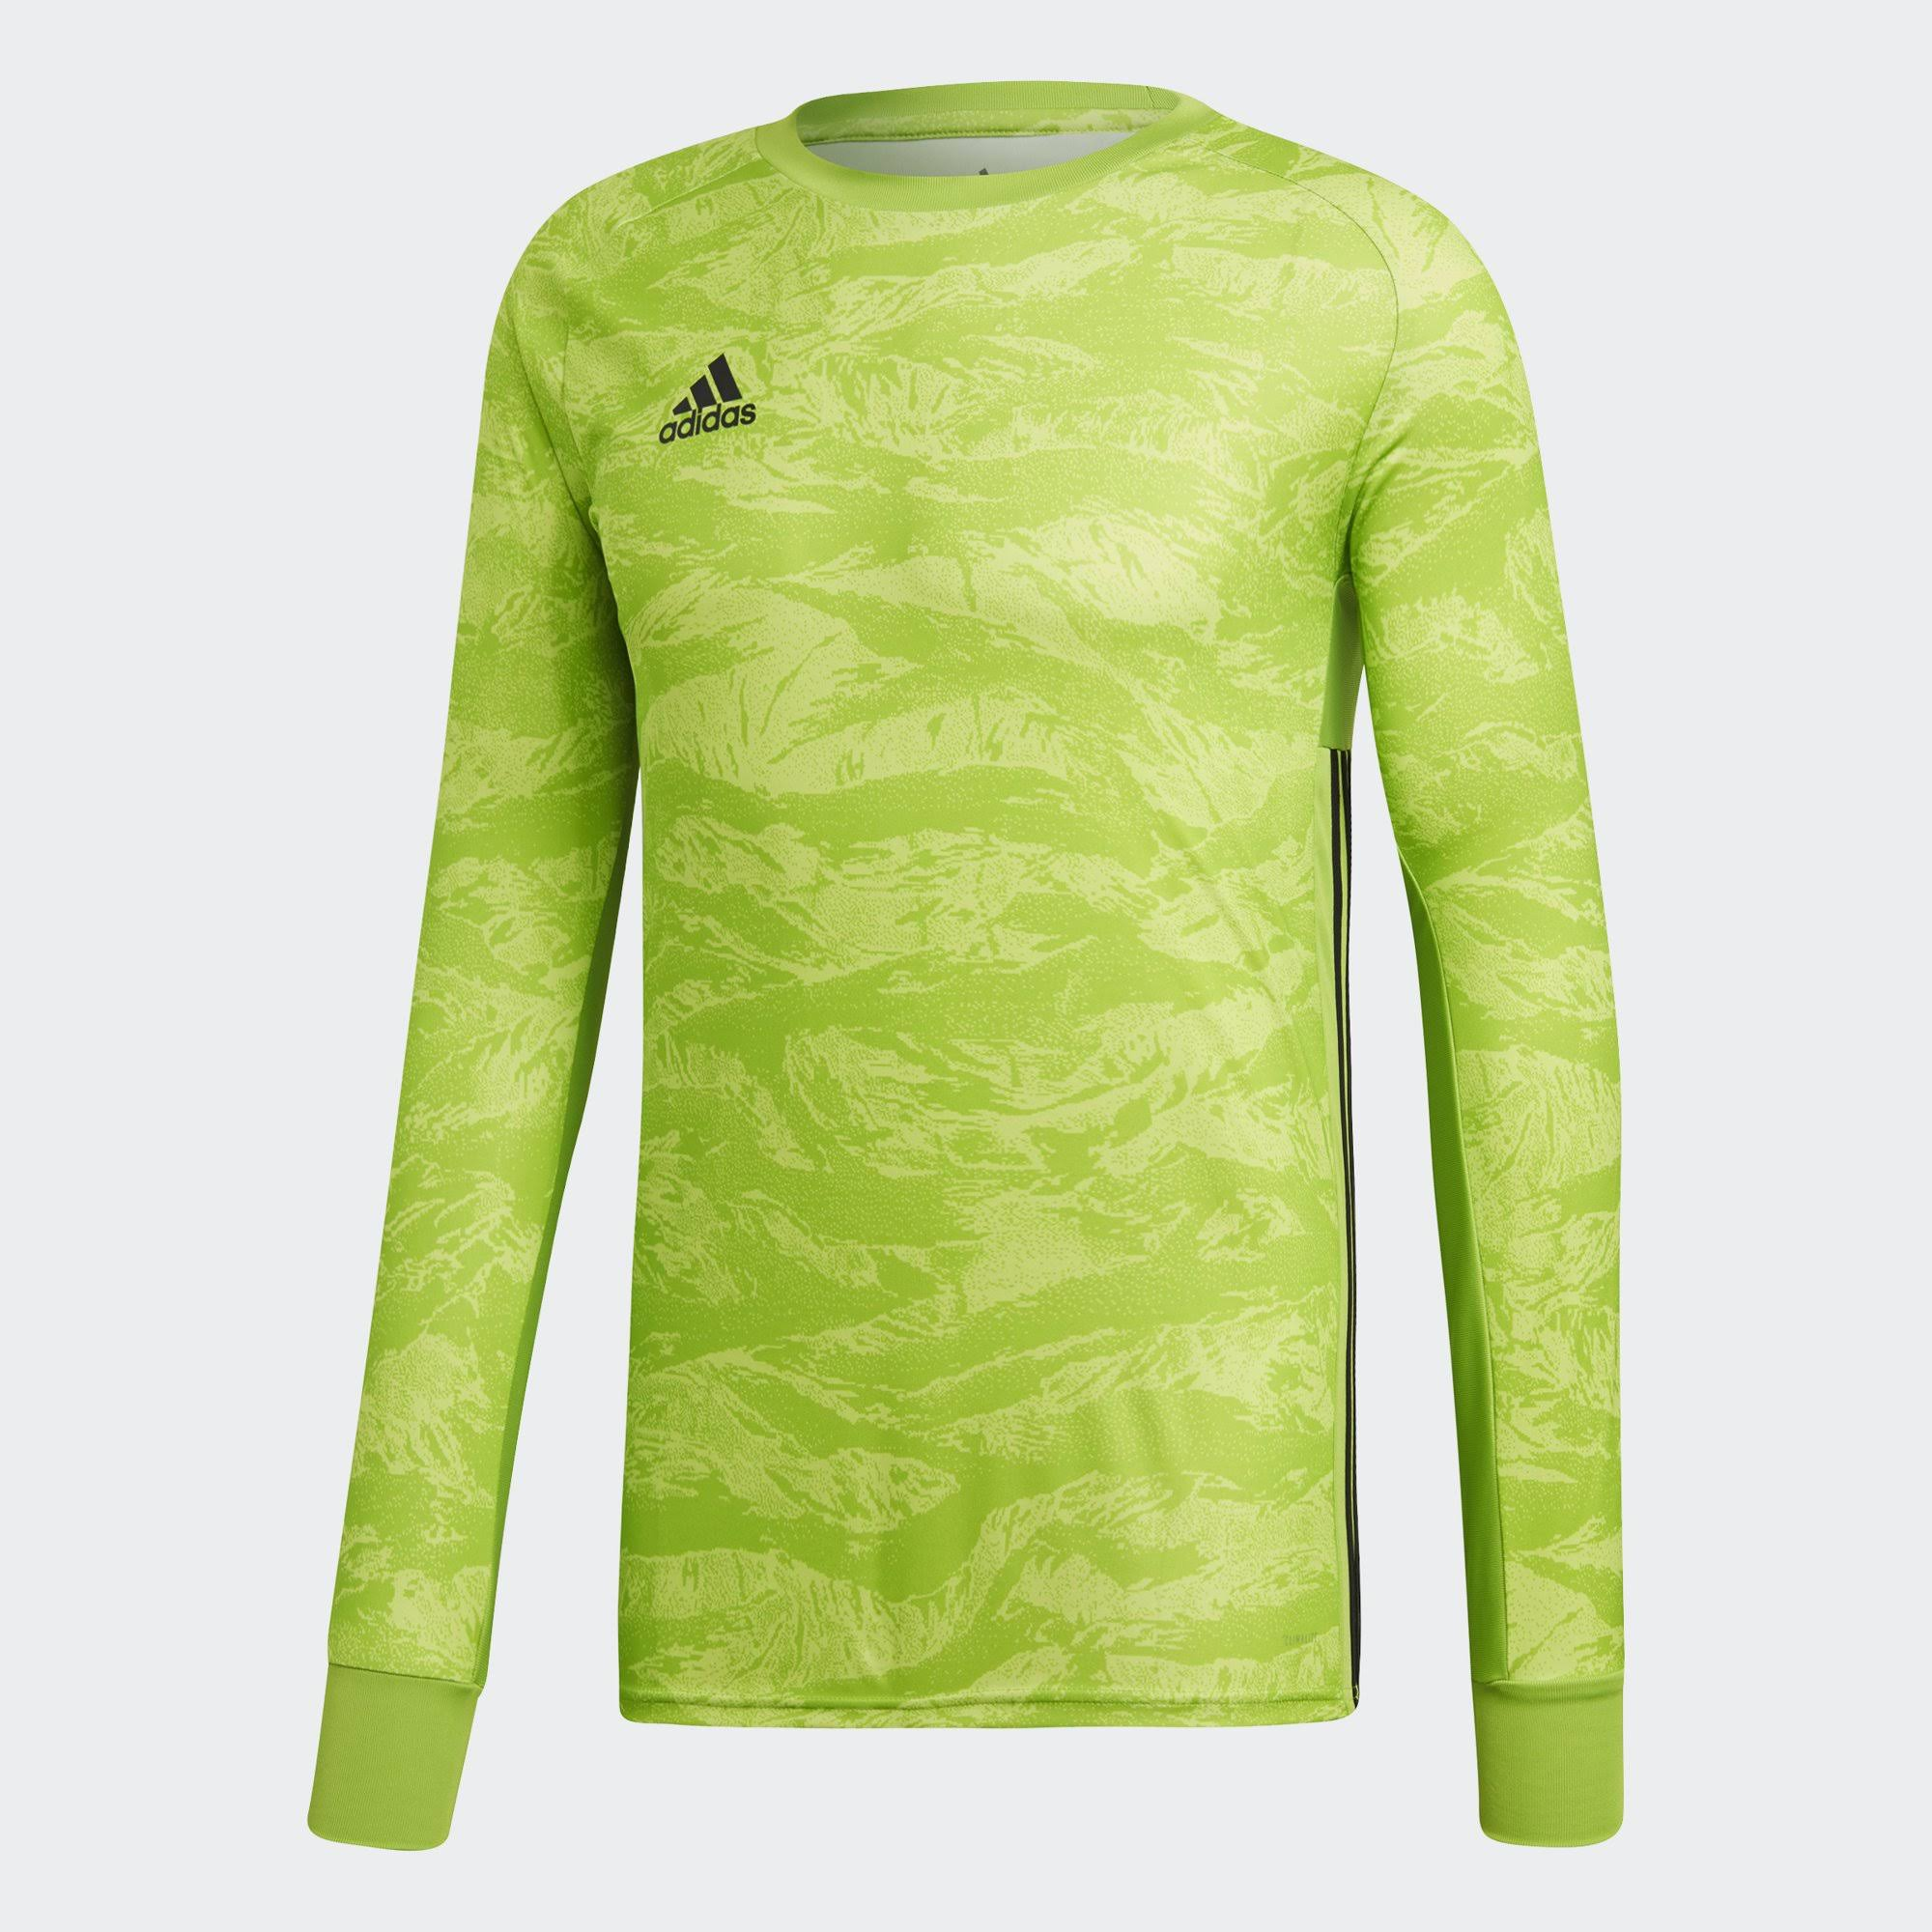 Adidas Adipro 19 Long Sleeve Goalkeeper Jersey - Green - XL